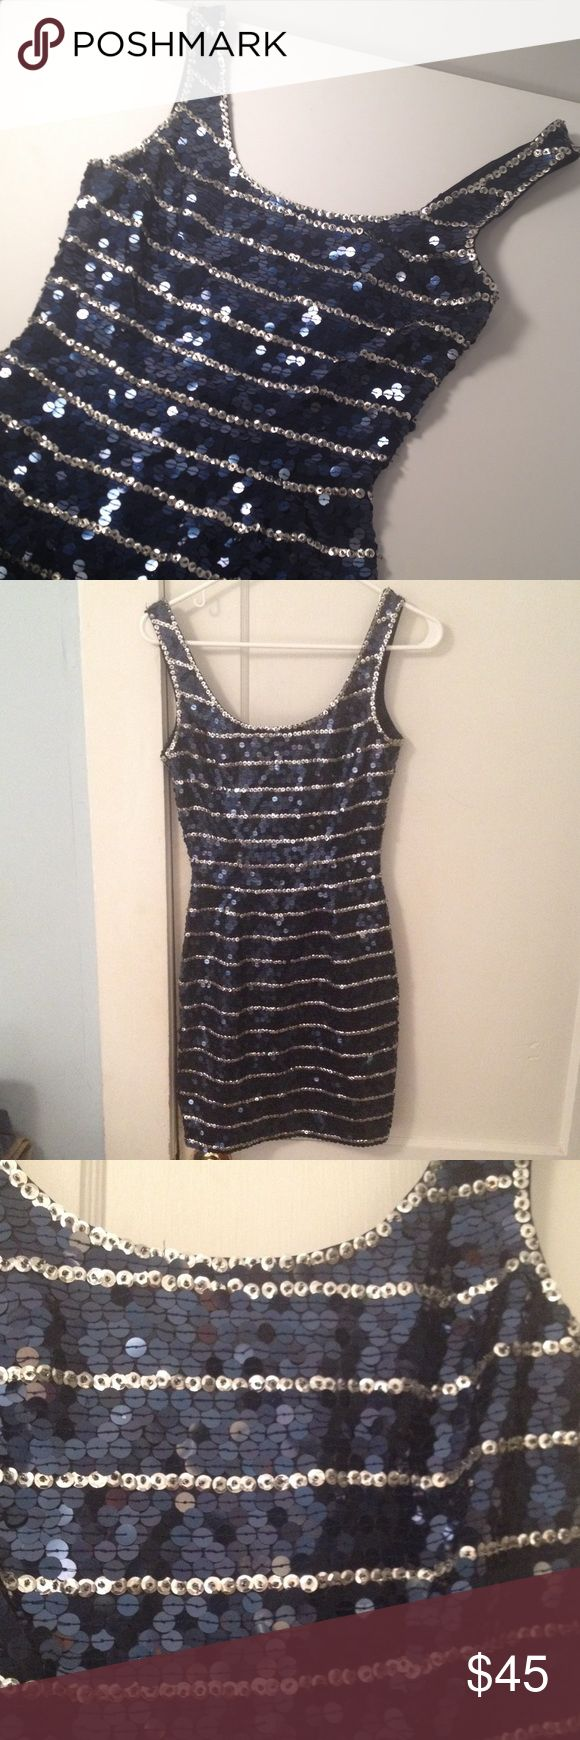 Niteline Della Roufogali Sequin Party Dress Niteline Della Roufogali Sequin Party Strapless Dress. Size 2. Sequins are mostly blue with some silver (the horizontal lines). Composition is 100% polyester. The perfect holiday dress or wear it for New Years Eve! Niteline Della Roufogali  Dresses